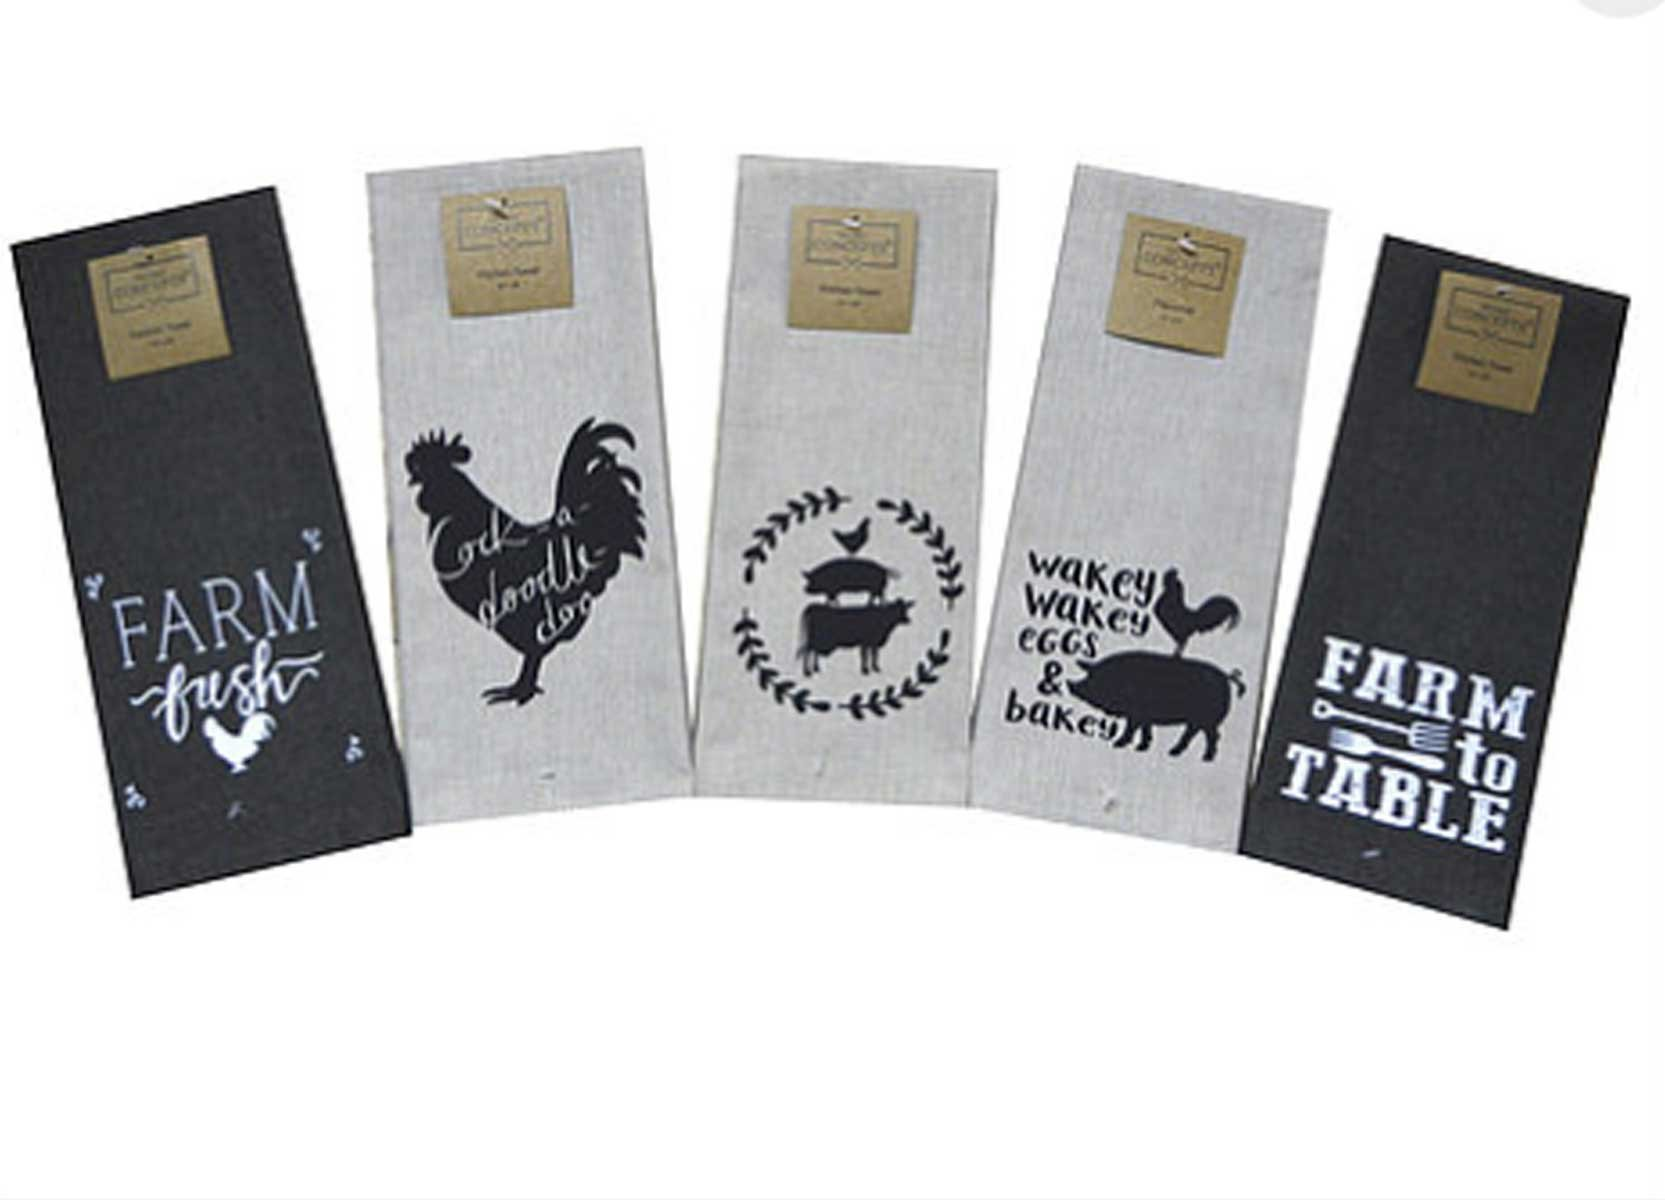 Twisted Anchor Trading Co Set of 5 Cute and Funny Farm Kitchen Towels - Dark Linen and Black Kitchen Towels Gift Set - Comes in Organza Gift Bag